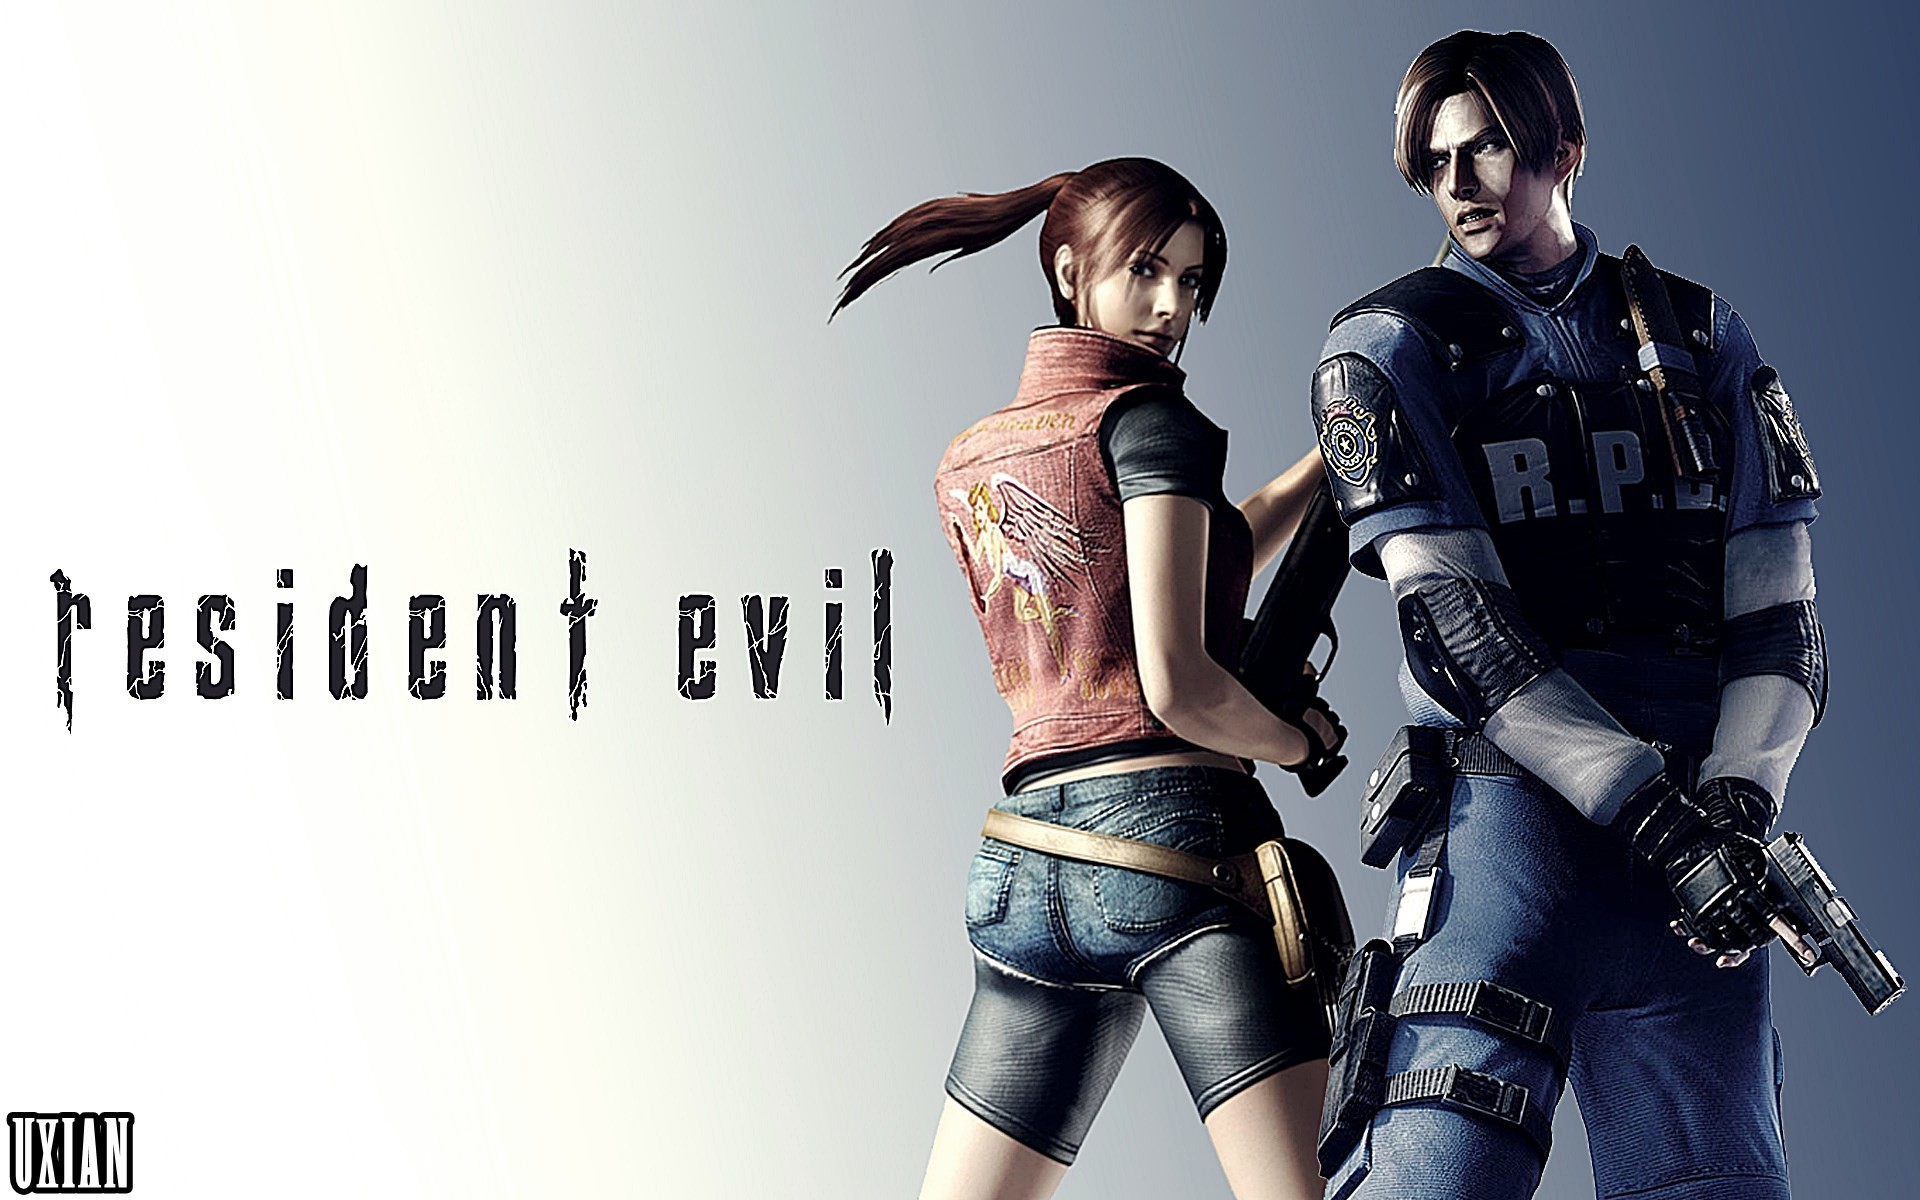 Res: 1920x1200, #61186, claire redfield category - free screensaver wallpapers for claire  redfield